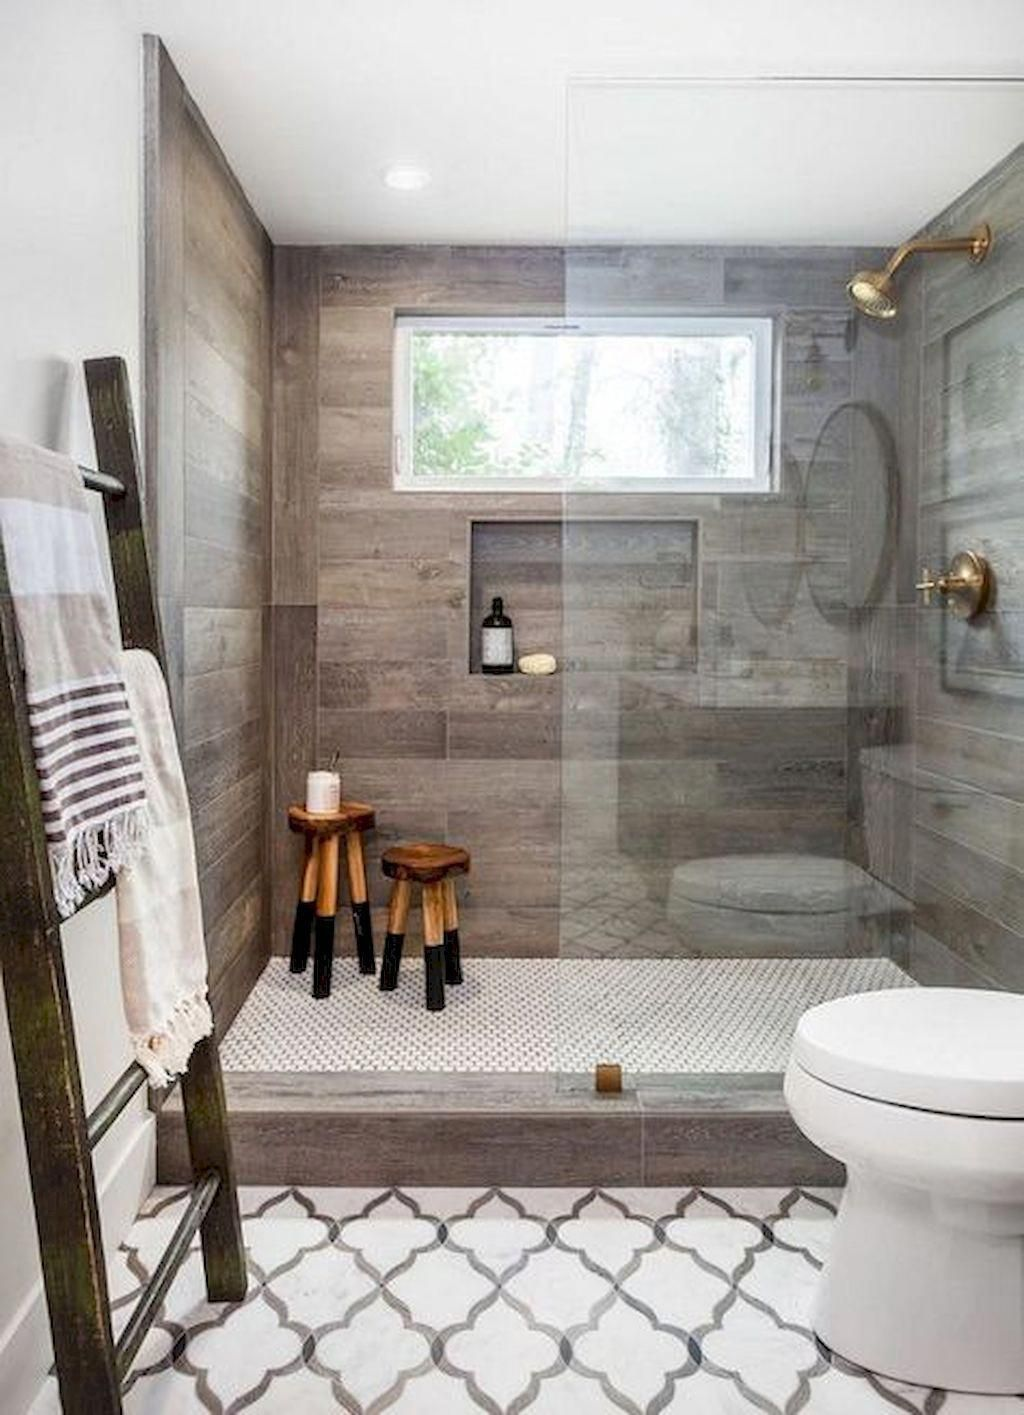 Pin On Bathroom Downpours And Also Add Ons Ideas